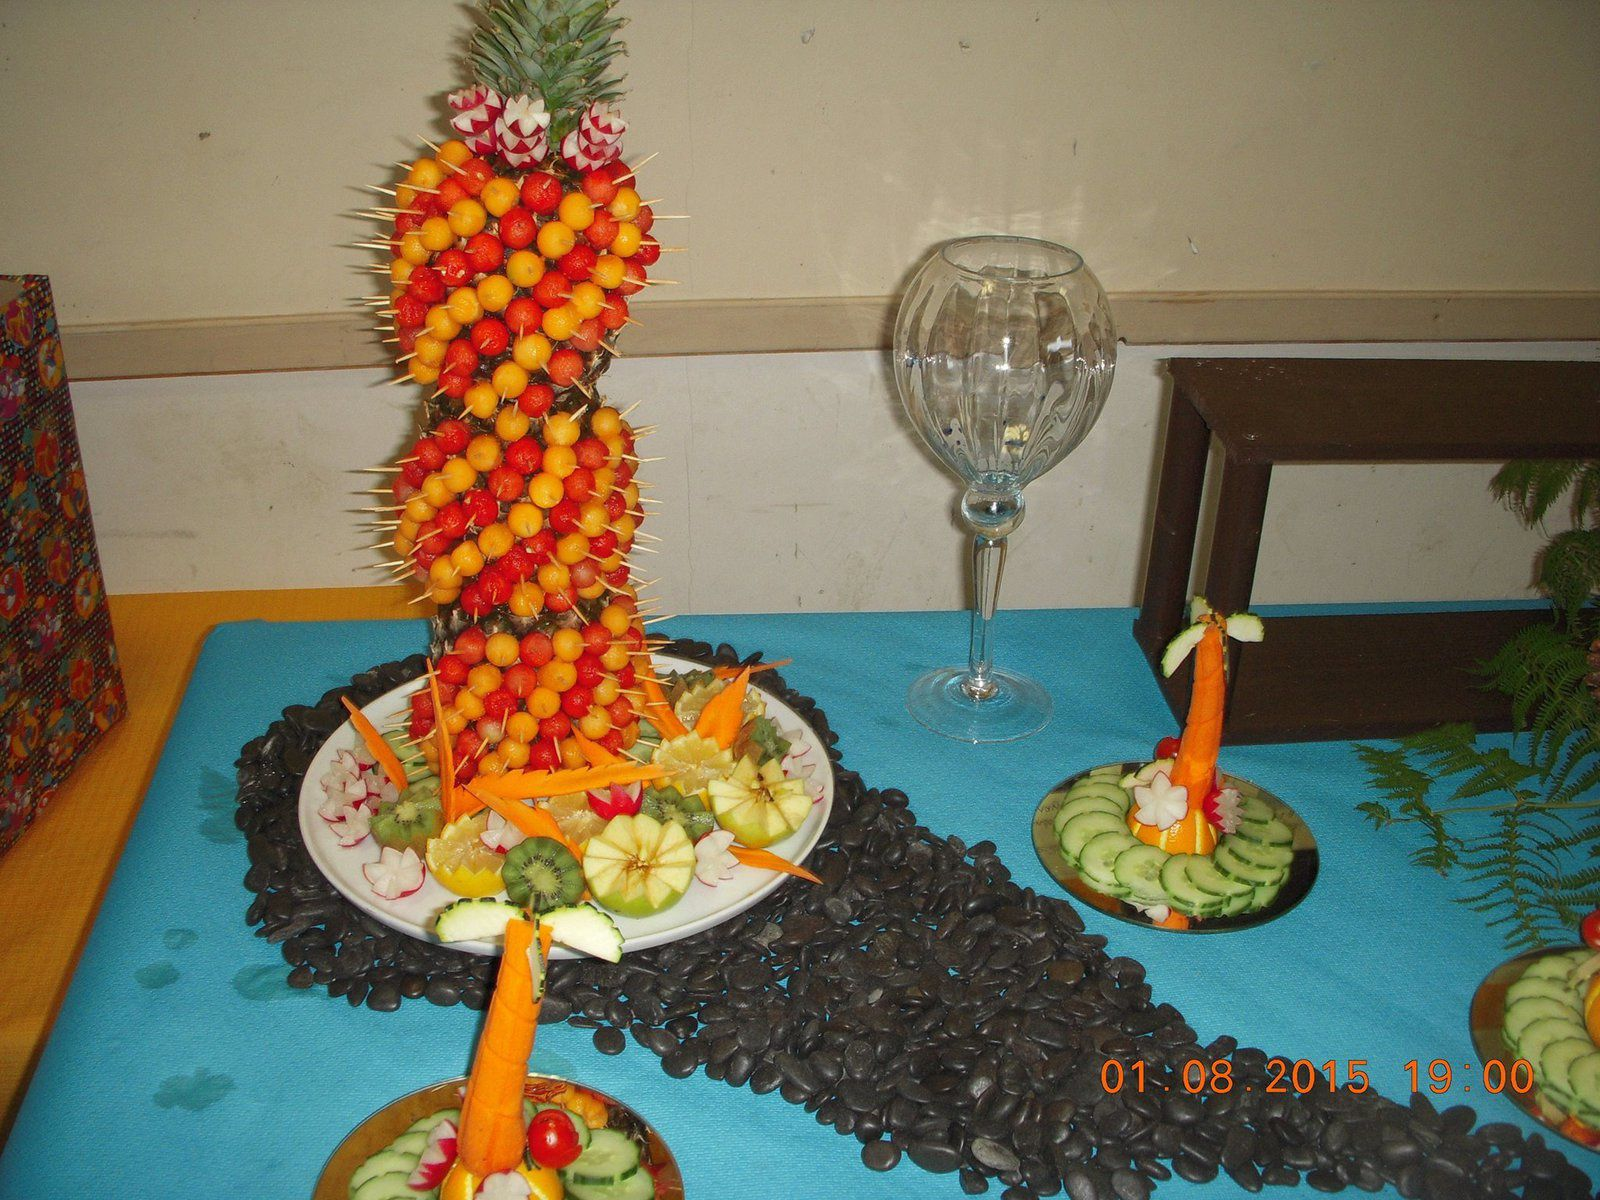 Brochette De Melon Et Past Que Sur Ananas Placards Gourmands Cuisinez Sans Faire Les Courses